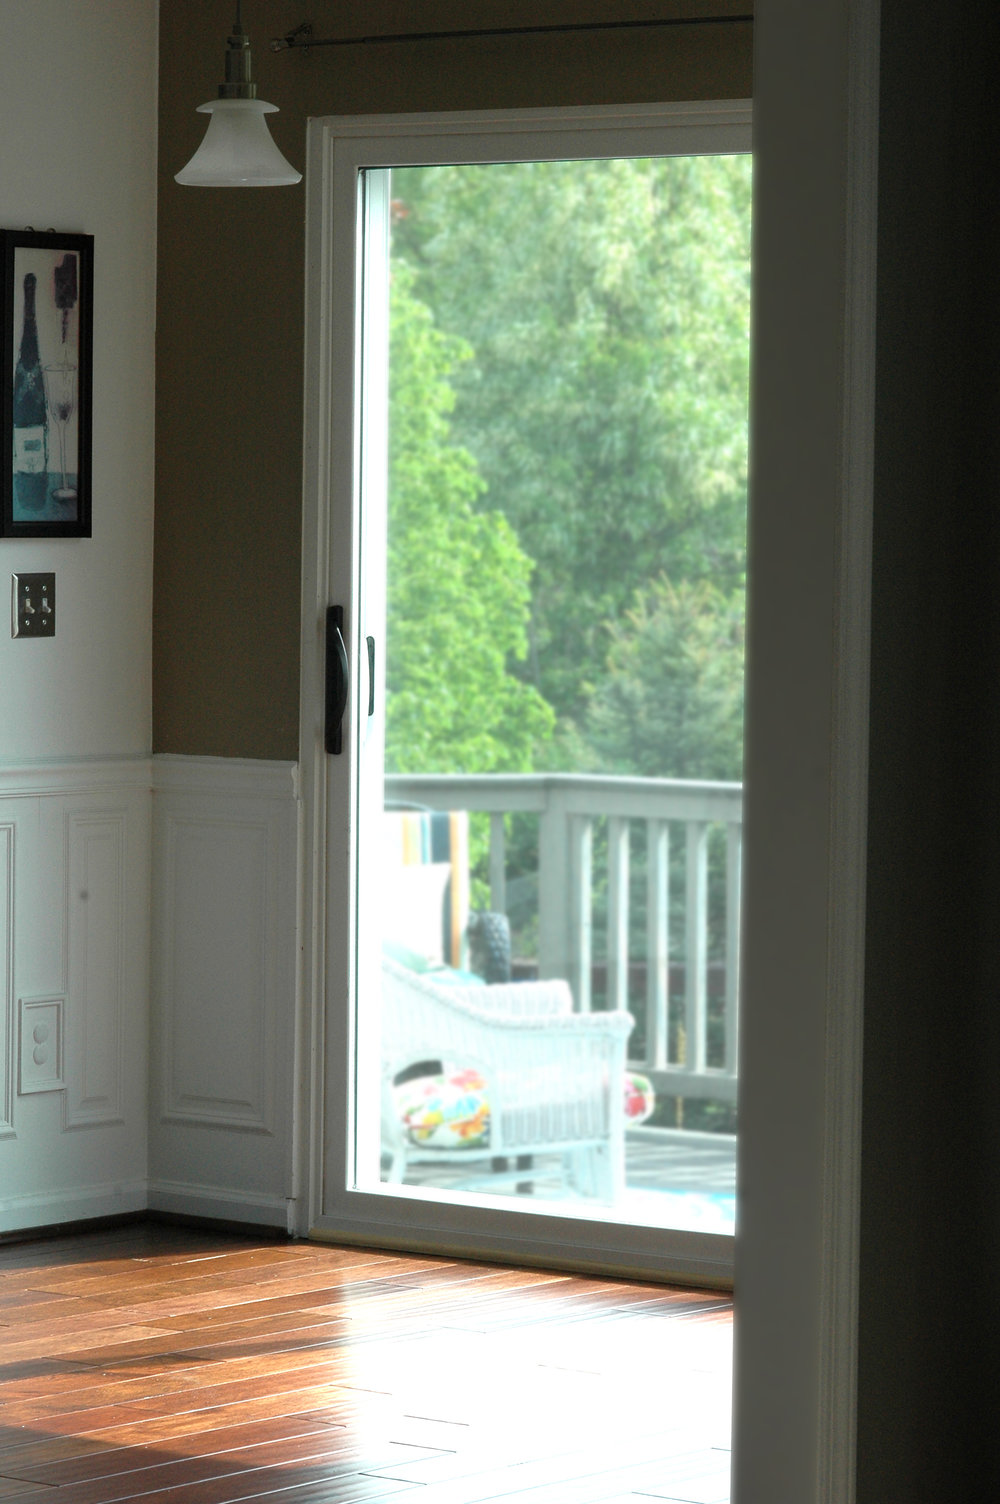 Energy efficient doorwalls like these can bring in a $40 rebate. Whether you prefer to file online or through the mail, we make the rebate process easy.